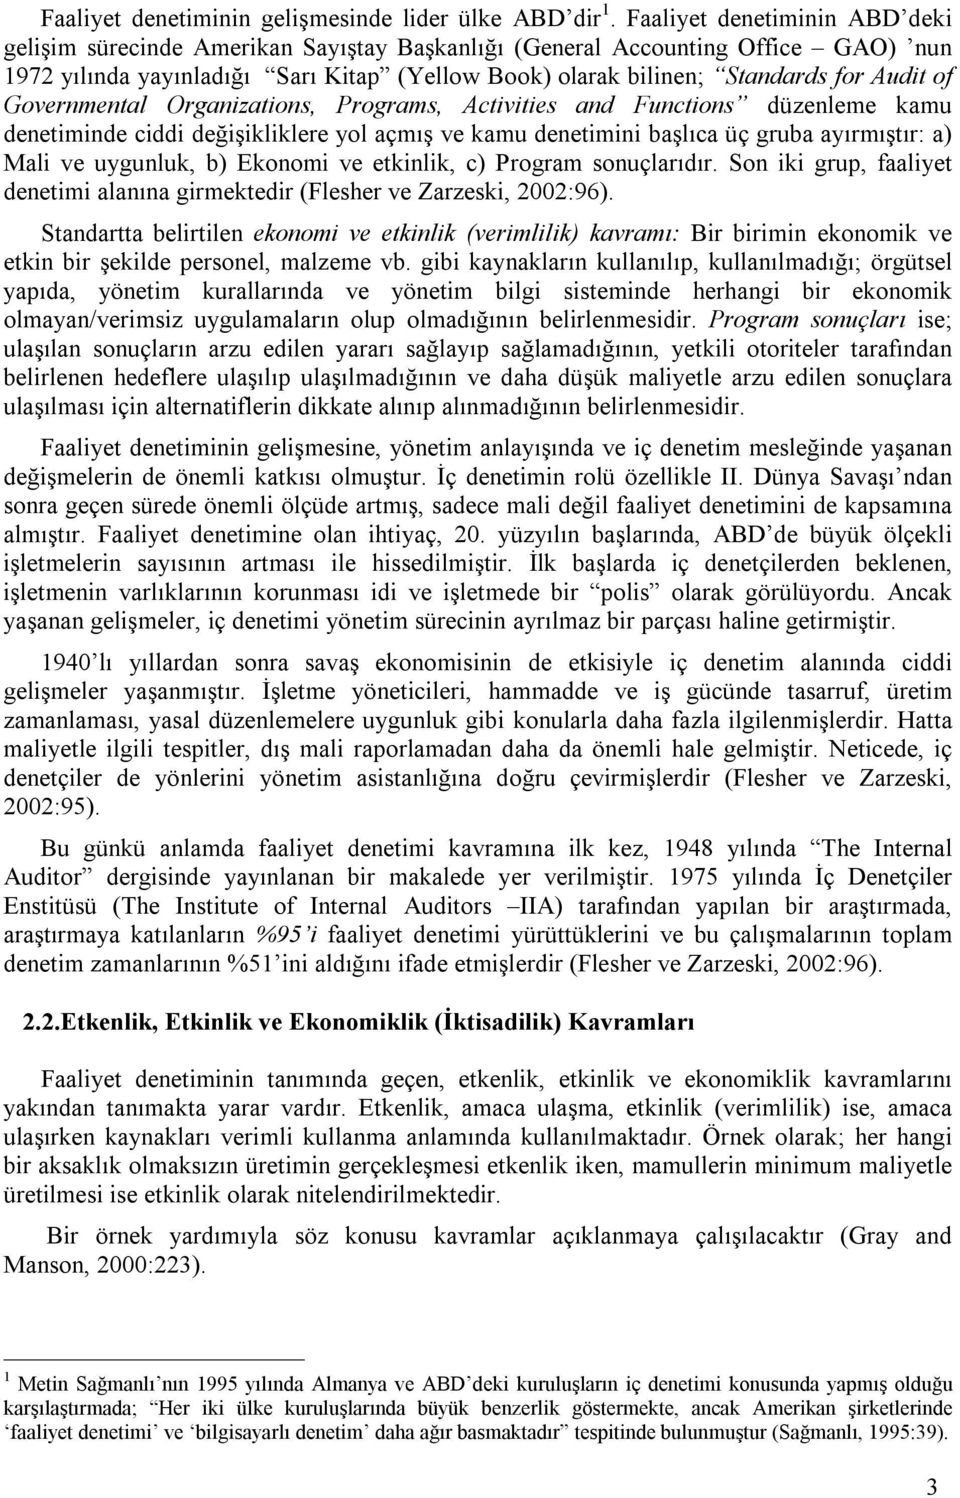 of Governmental Organizations, Programs, Activities and Functions düzenleme kamu denetiminde ciddi değişikliklere yol açmış ve kamu denetimini başlıca üç gruba ayırmıştır: a) Mali ve uygunluk, b)